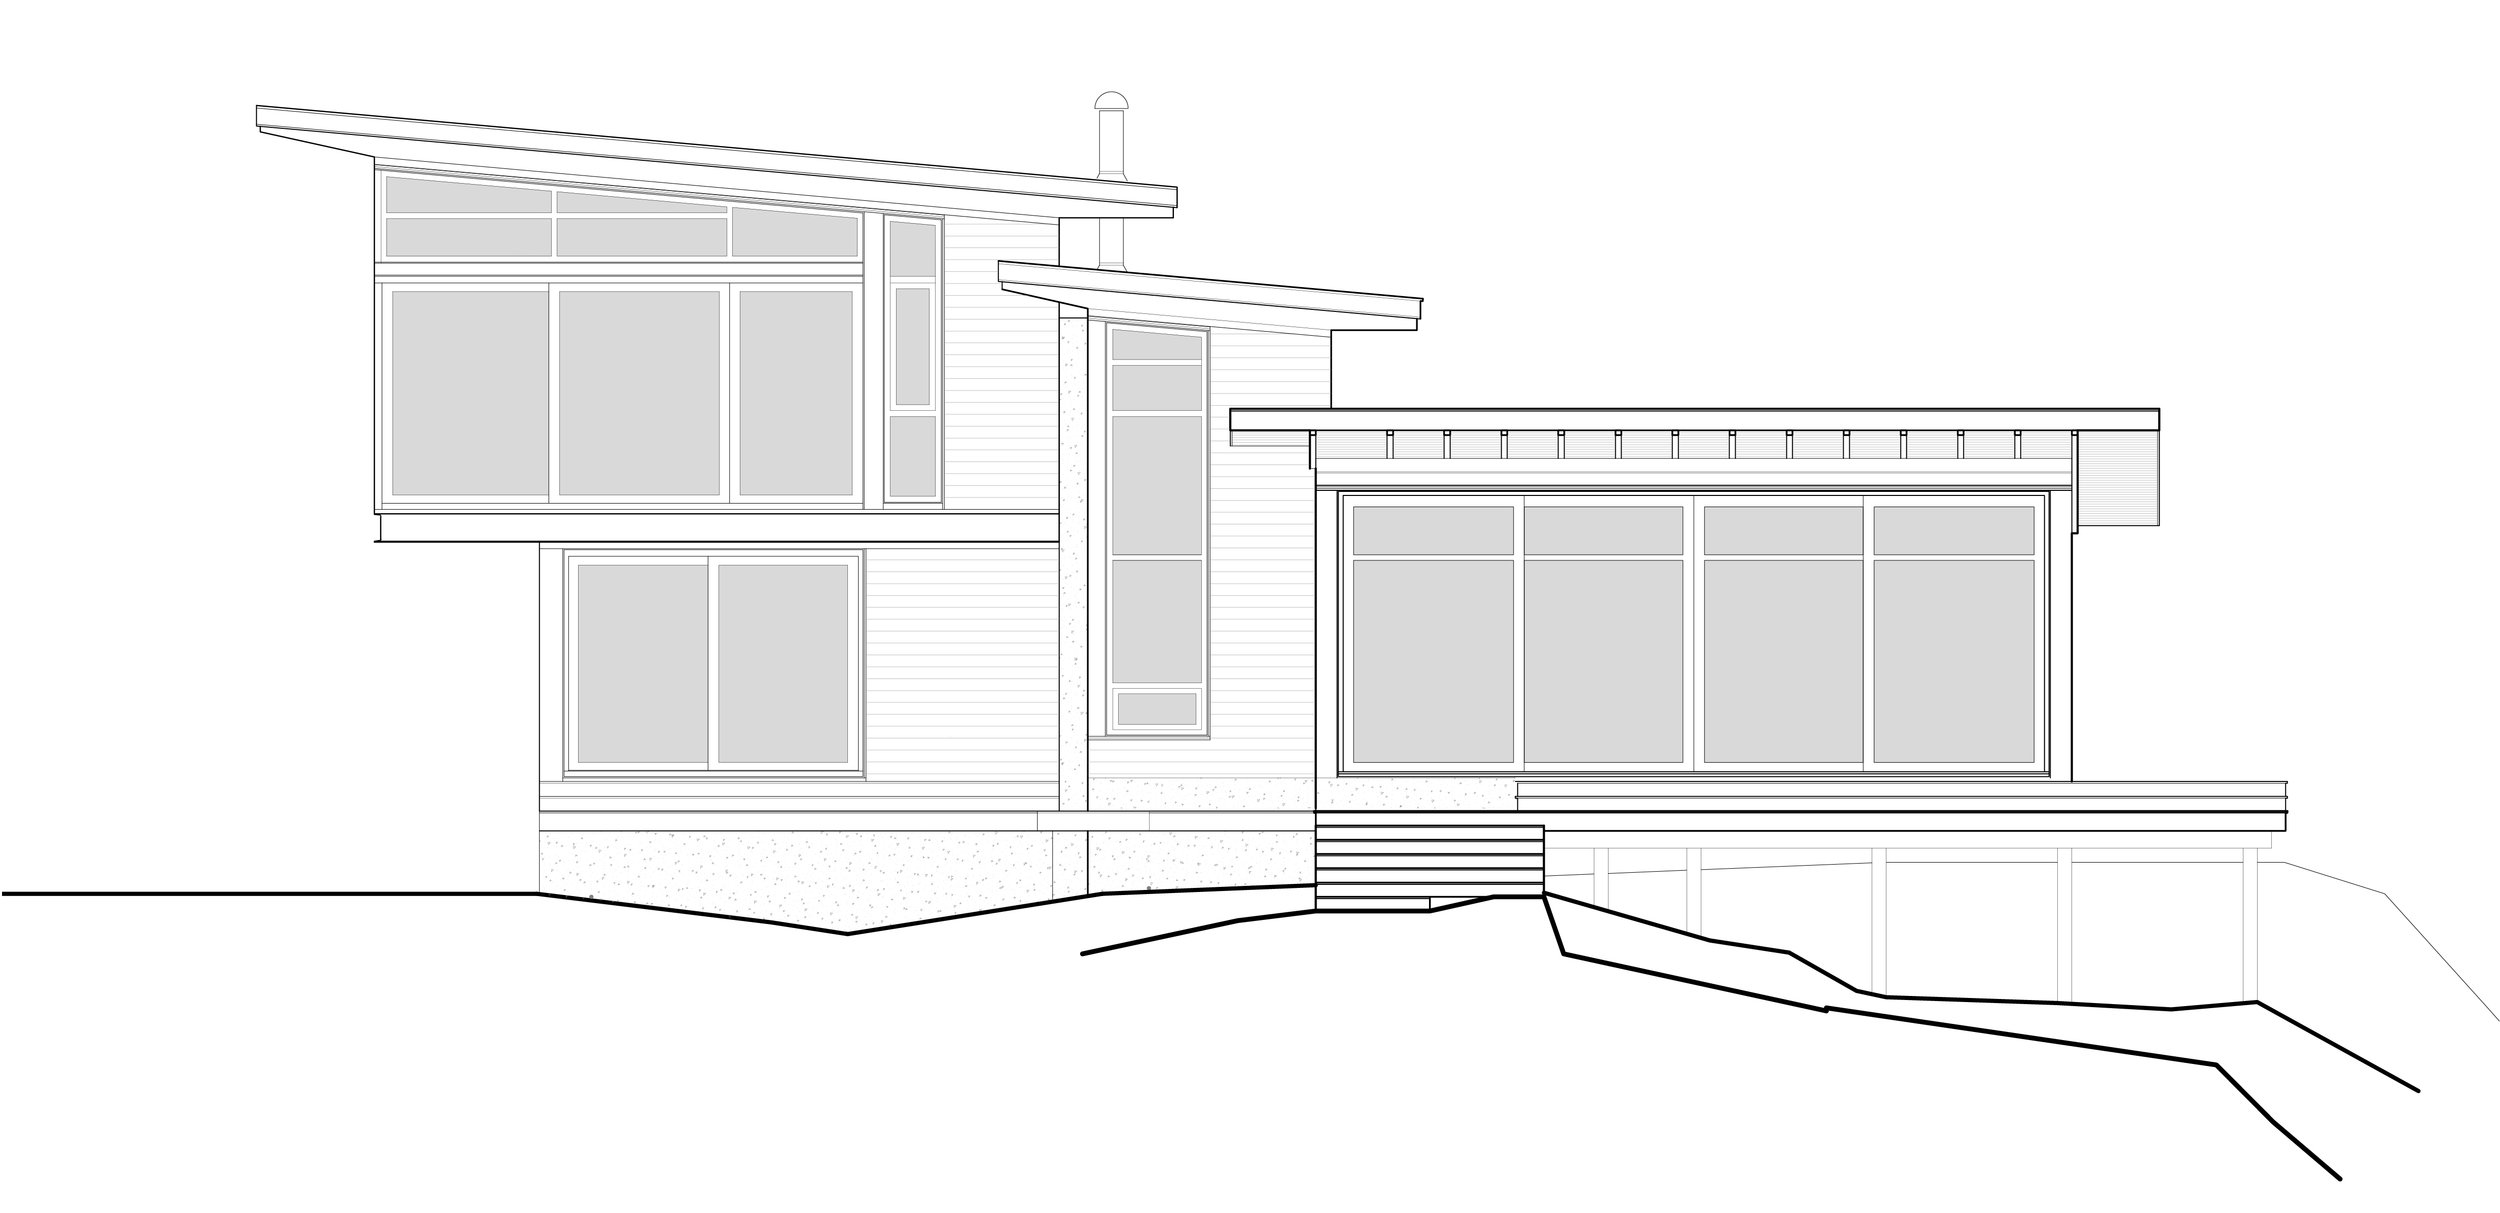 Pozer_20181011_Presentation East Elevation.jpg